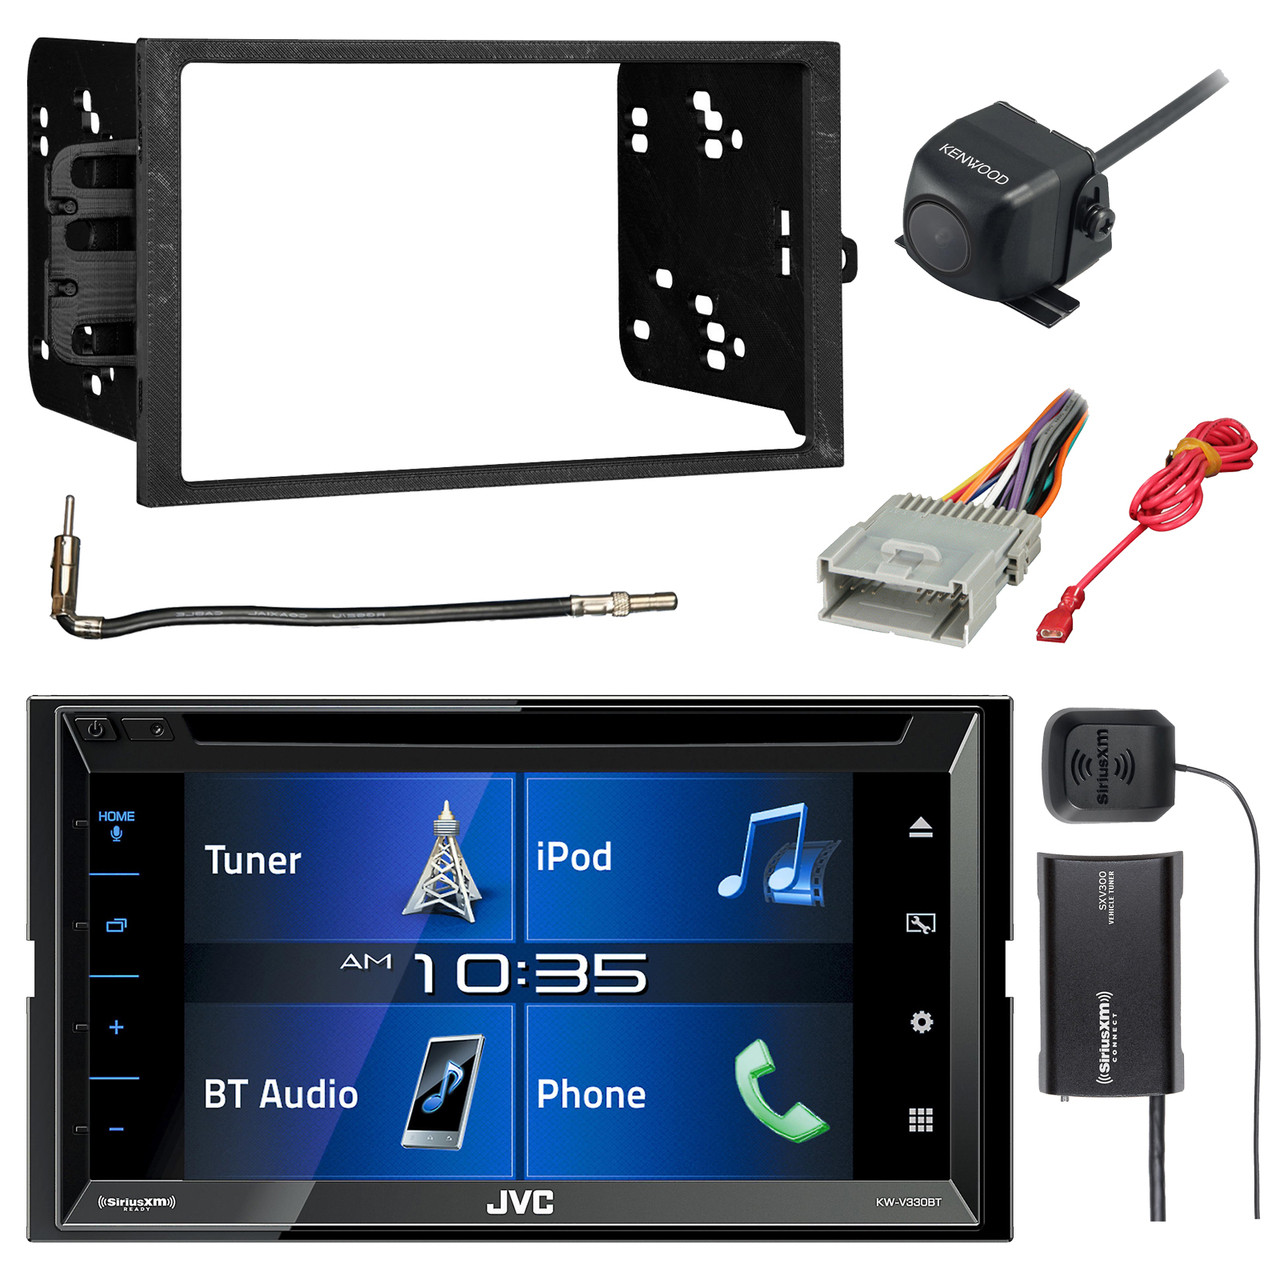 jvc kw v330bt 6 8 double din bluetooth dvd cd am fm stereo siriusxm satellite vehicle tuner kit kenwood backup camera metra double din install dash kit  [ 1280 x 1280 Pixel ]